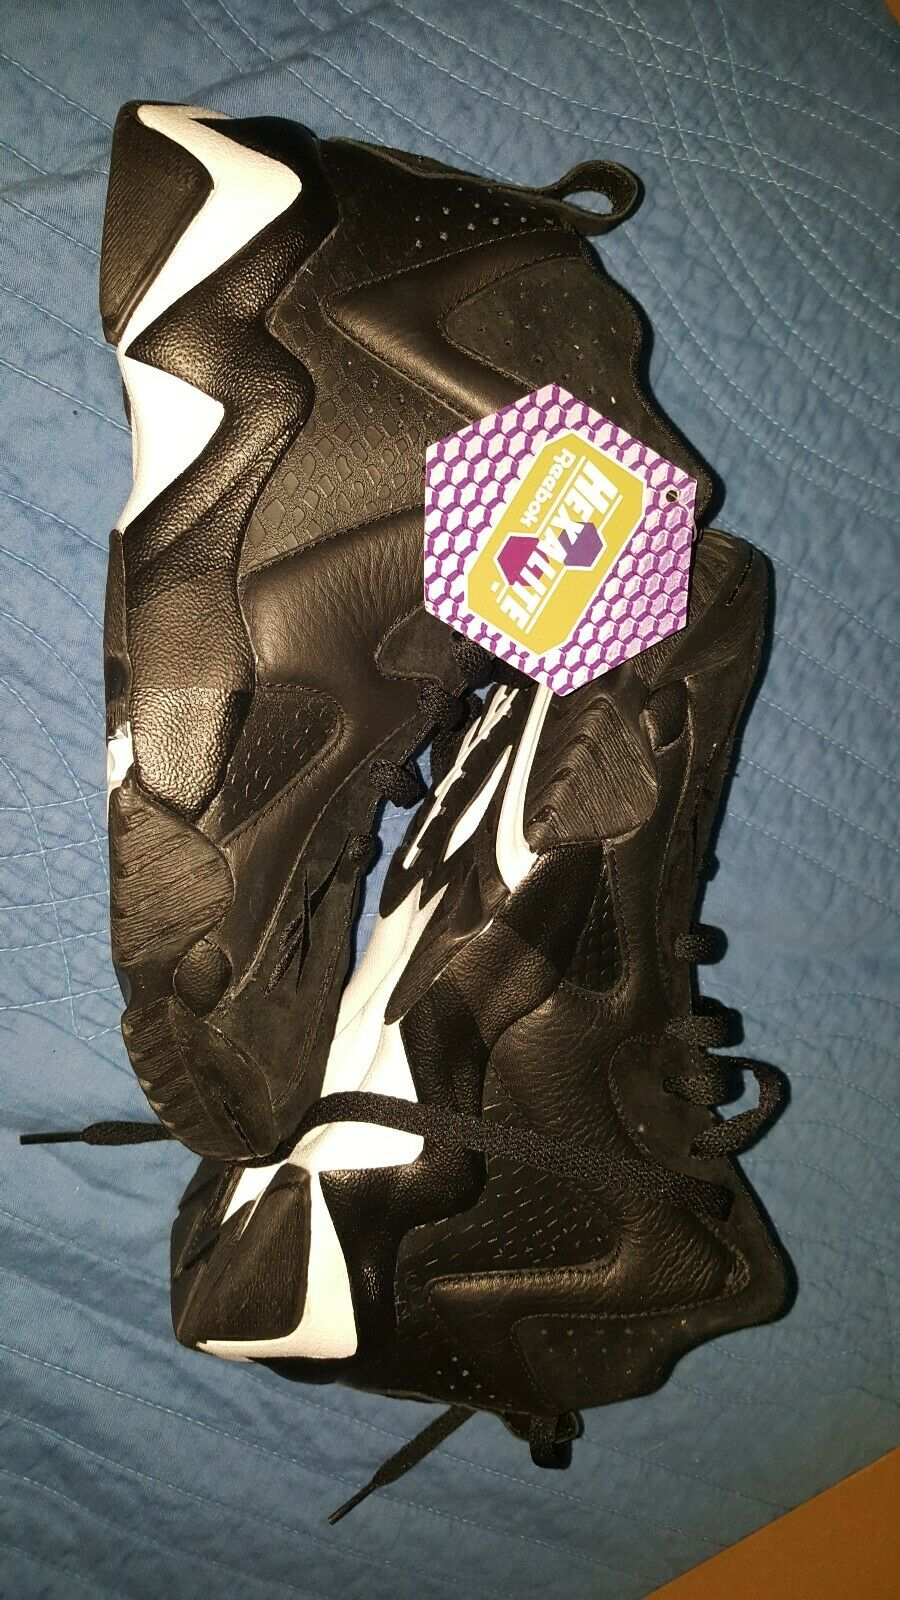 Reebok Kamikaze ii ATL LAX Kemp 8 Black Retro Men Basketball